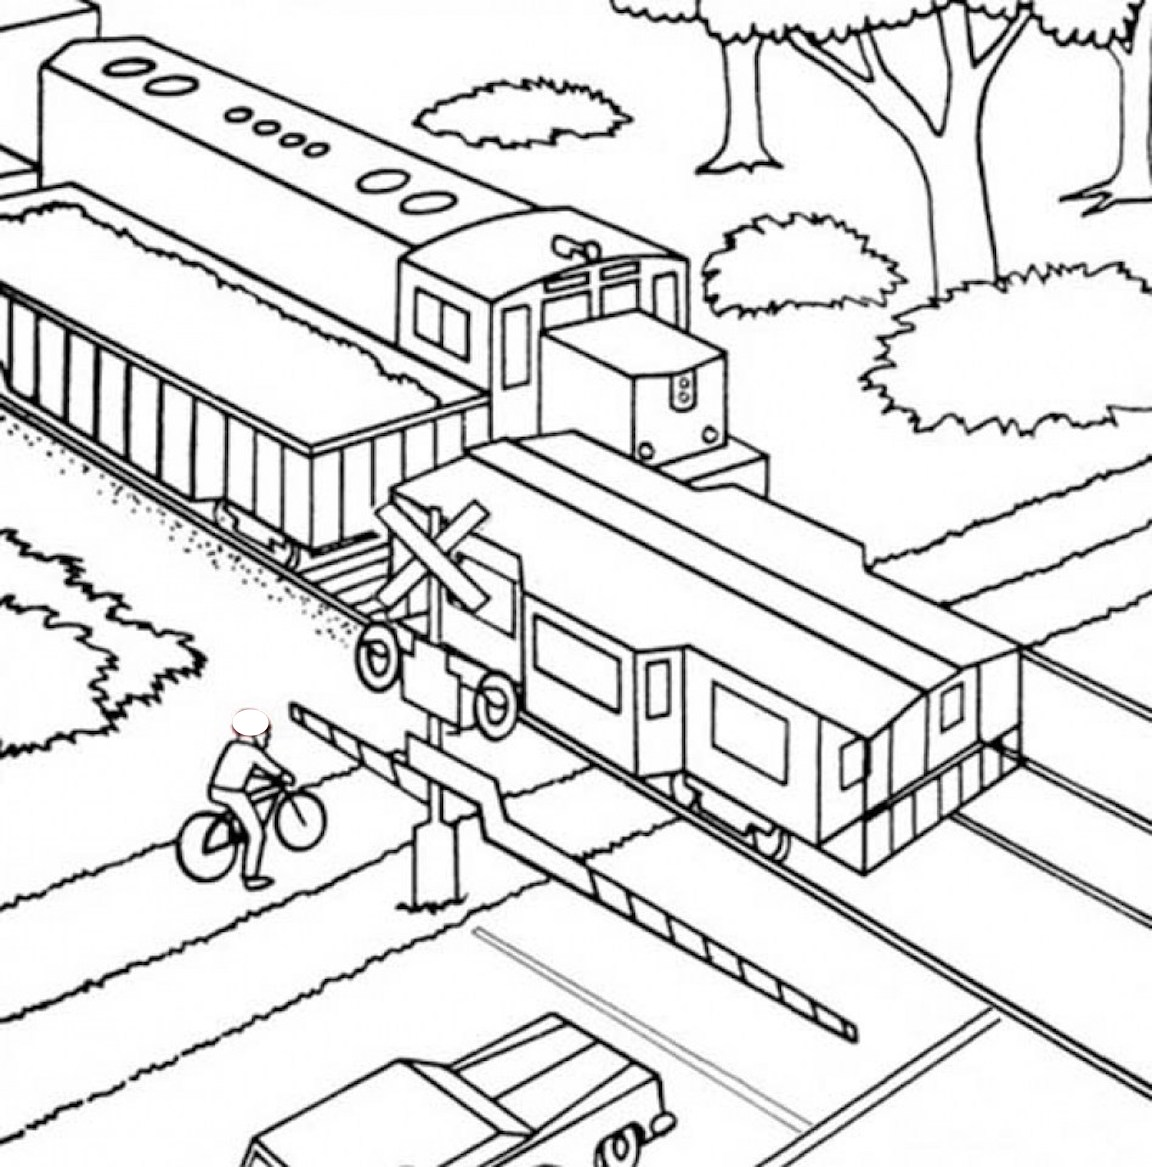 Train Coloring Pages And Other Top 10 Themed Coloring Challenges